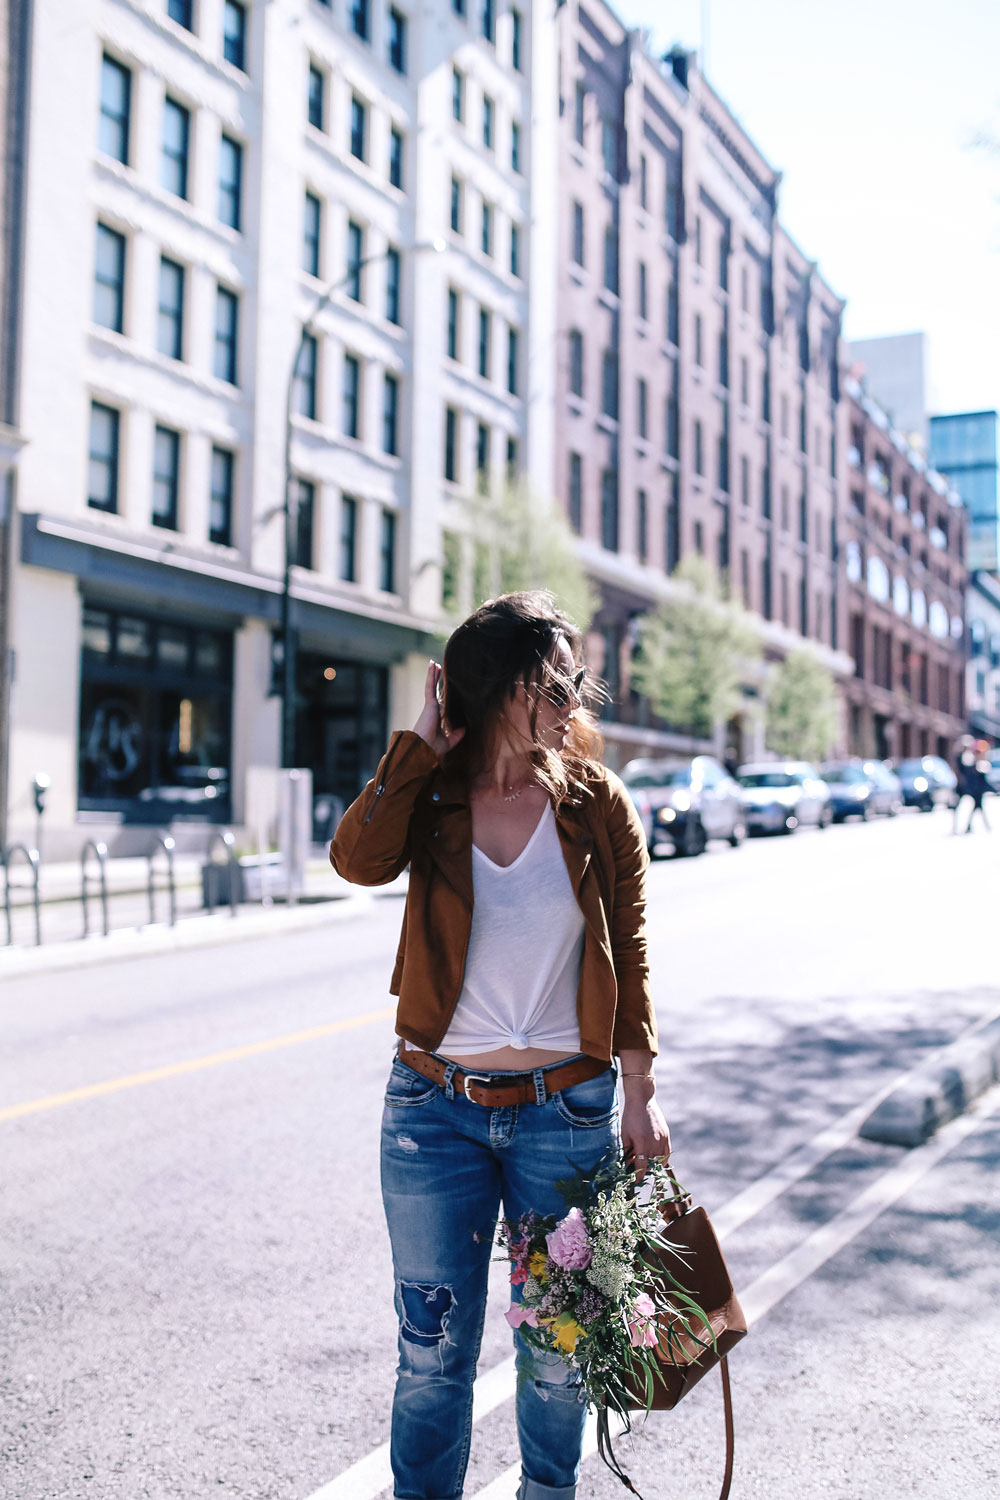 how to wear boyfriend jeans, casual outfit ideas in jcrew heels, mavi t shirt, aritzia auxiliary bag, suede moto jacket outfit ideas, revolve suede jacket, silver jeans boyfriend jeans, casual weekend outfit ideas by To Vogue or Bust